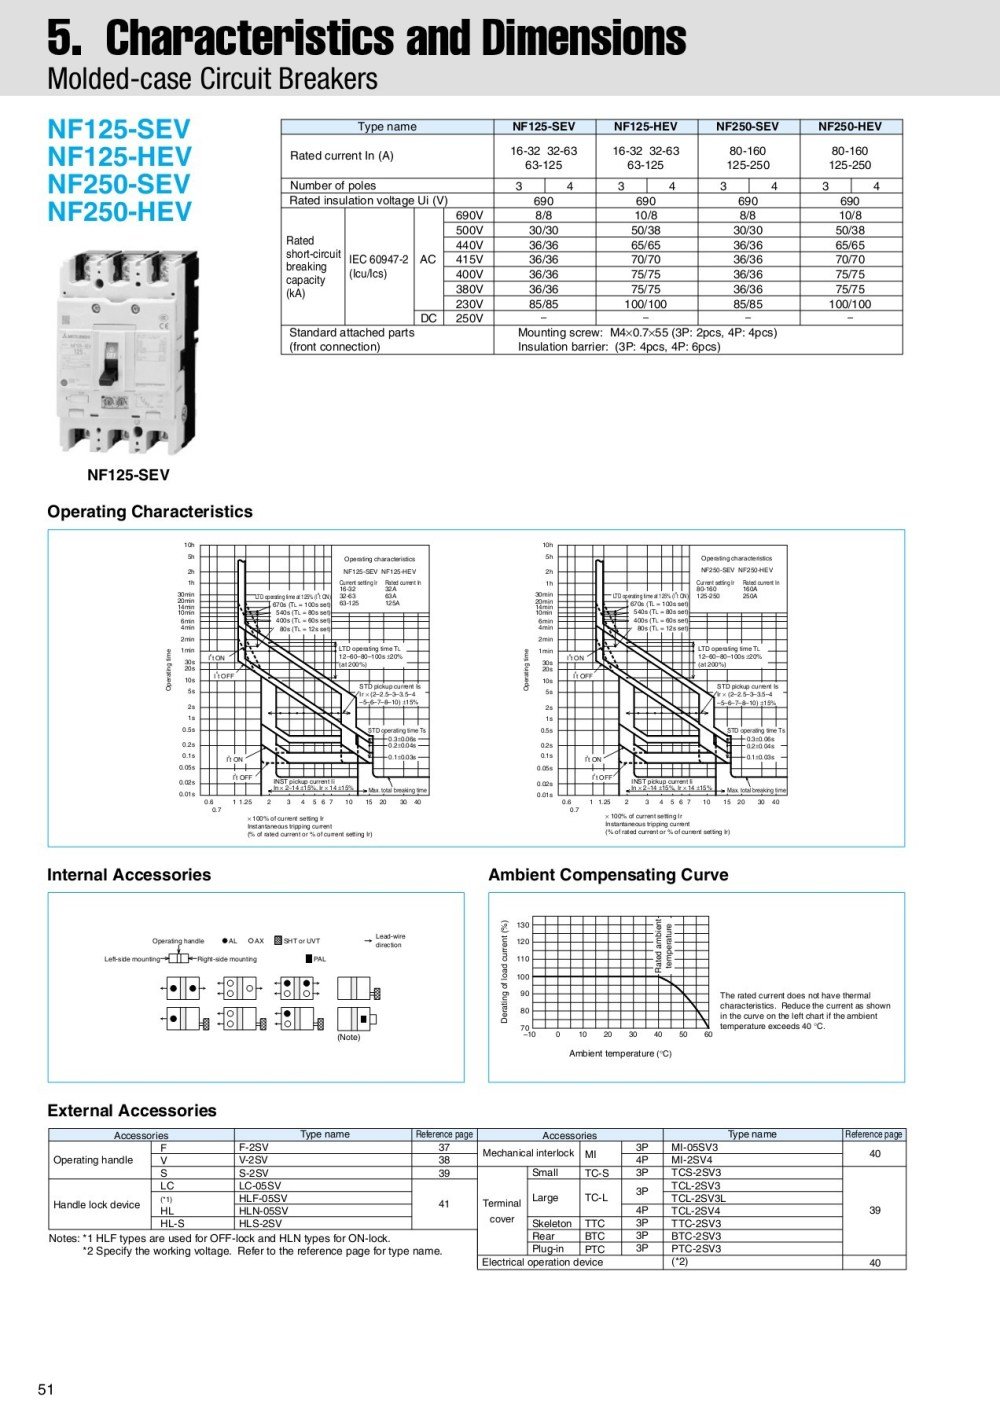 medium resolution of molded case circuit breakers earth leakage circuit breakers pages 51 70 text version fliphtml5